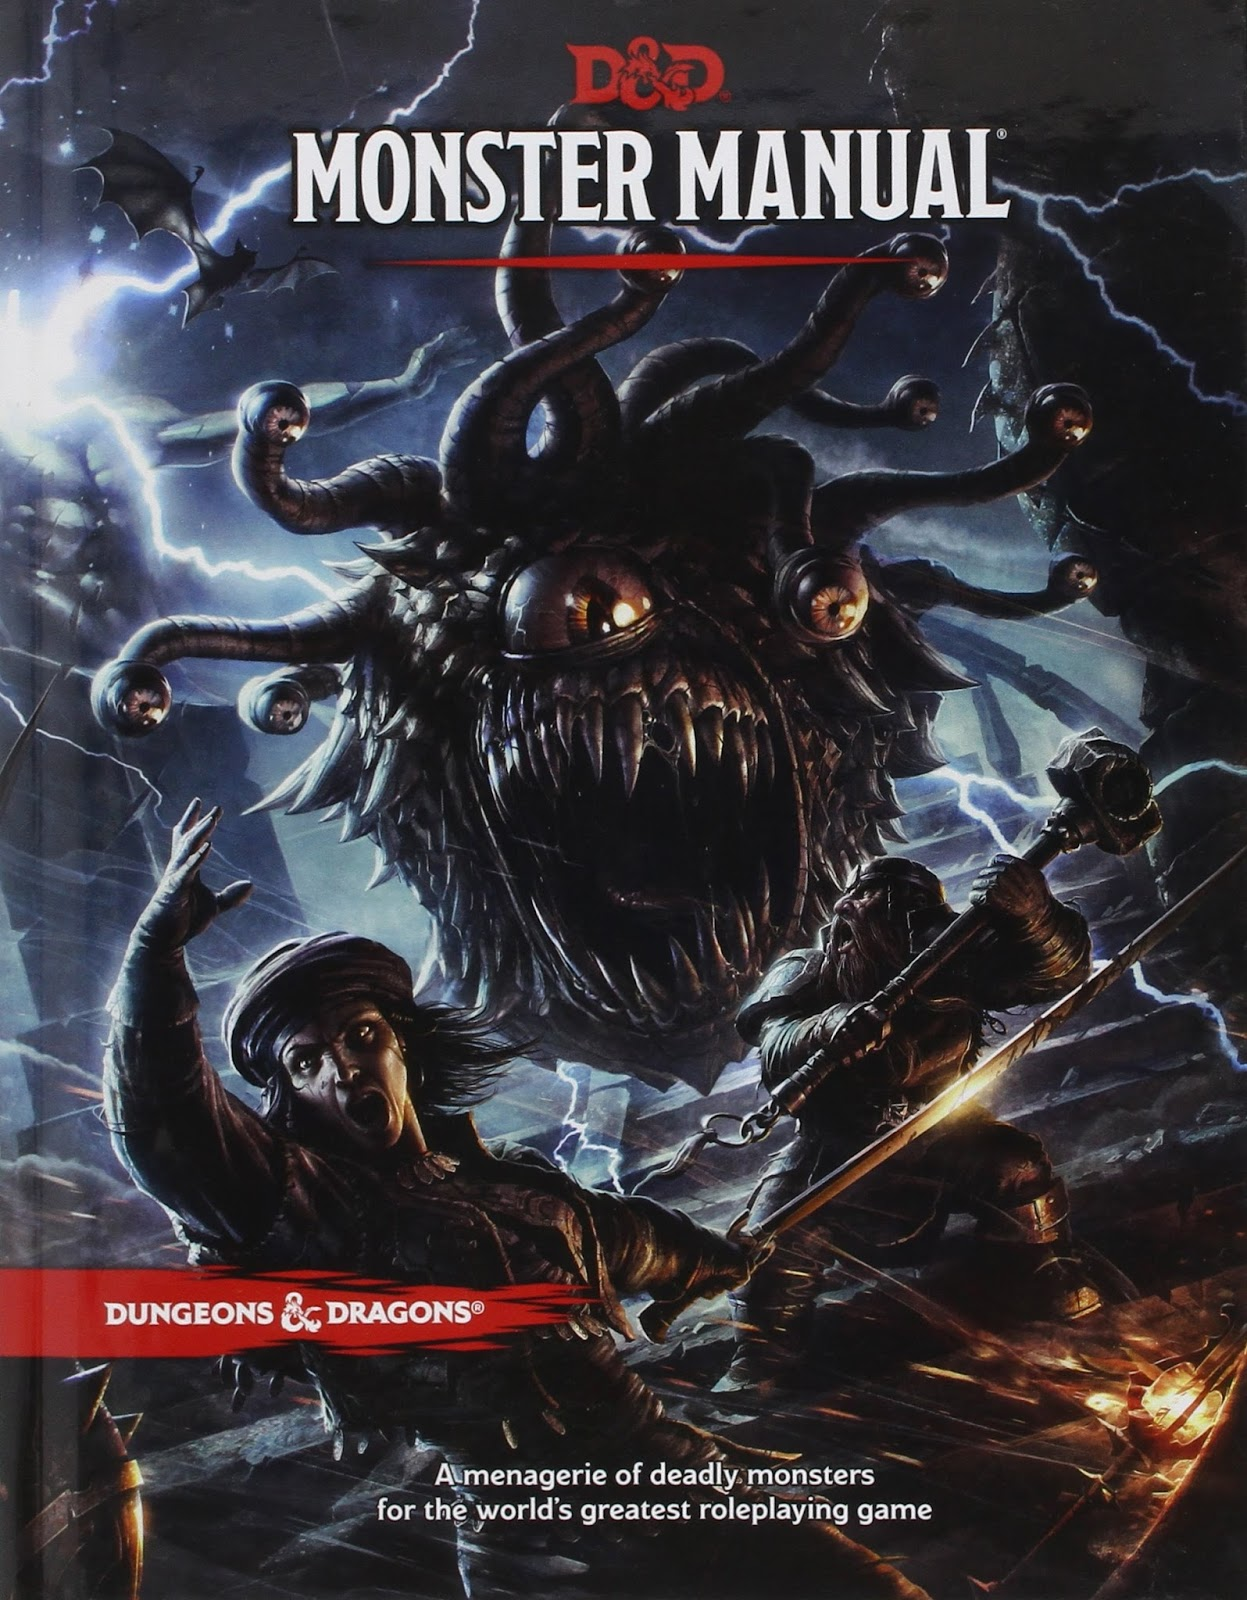 The Monster Manual